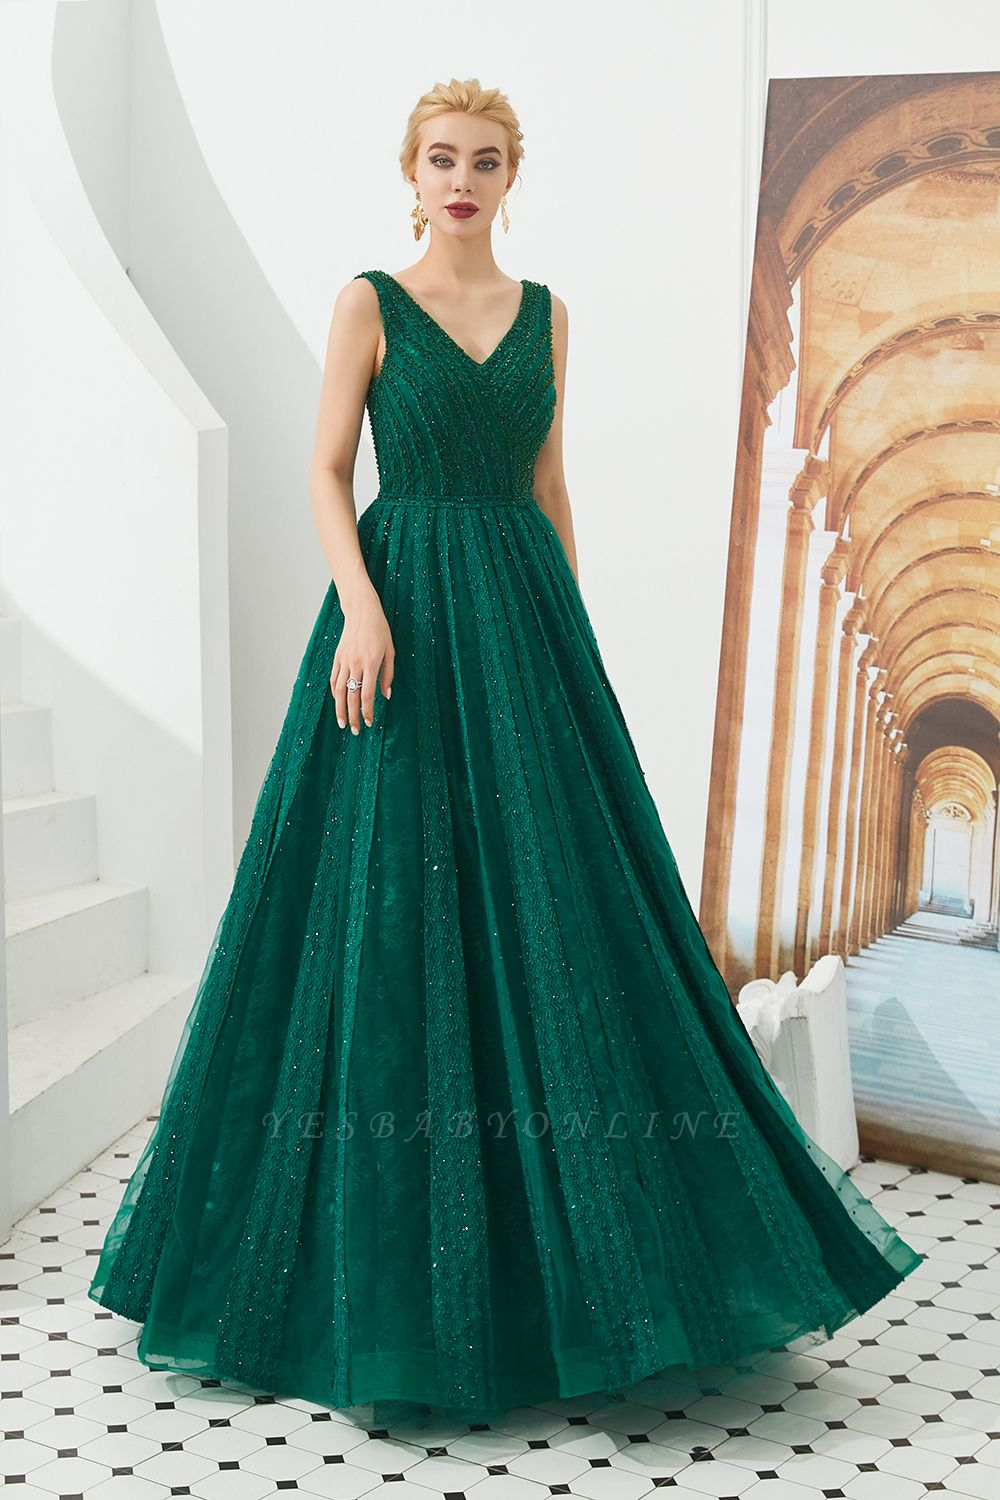 Gorgeous Straps V-neck A-line Long Prom Dresses | Jade Floor Length Evening Dresses